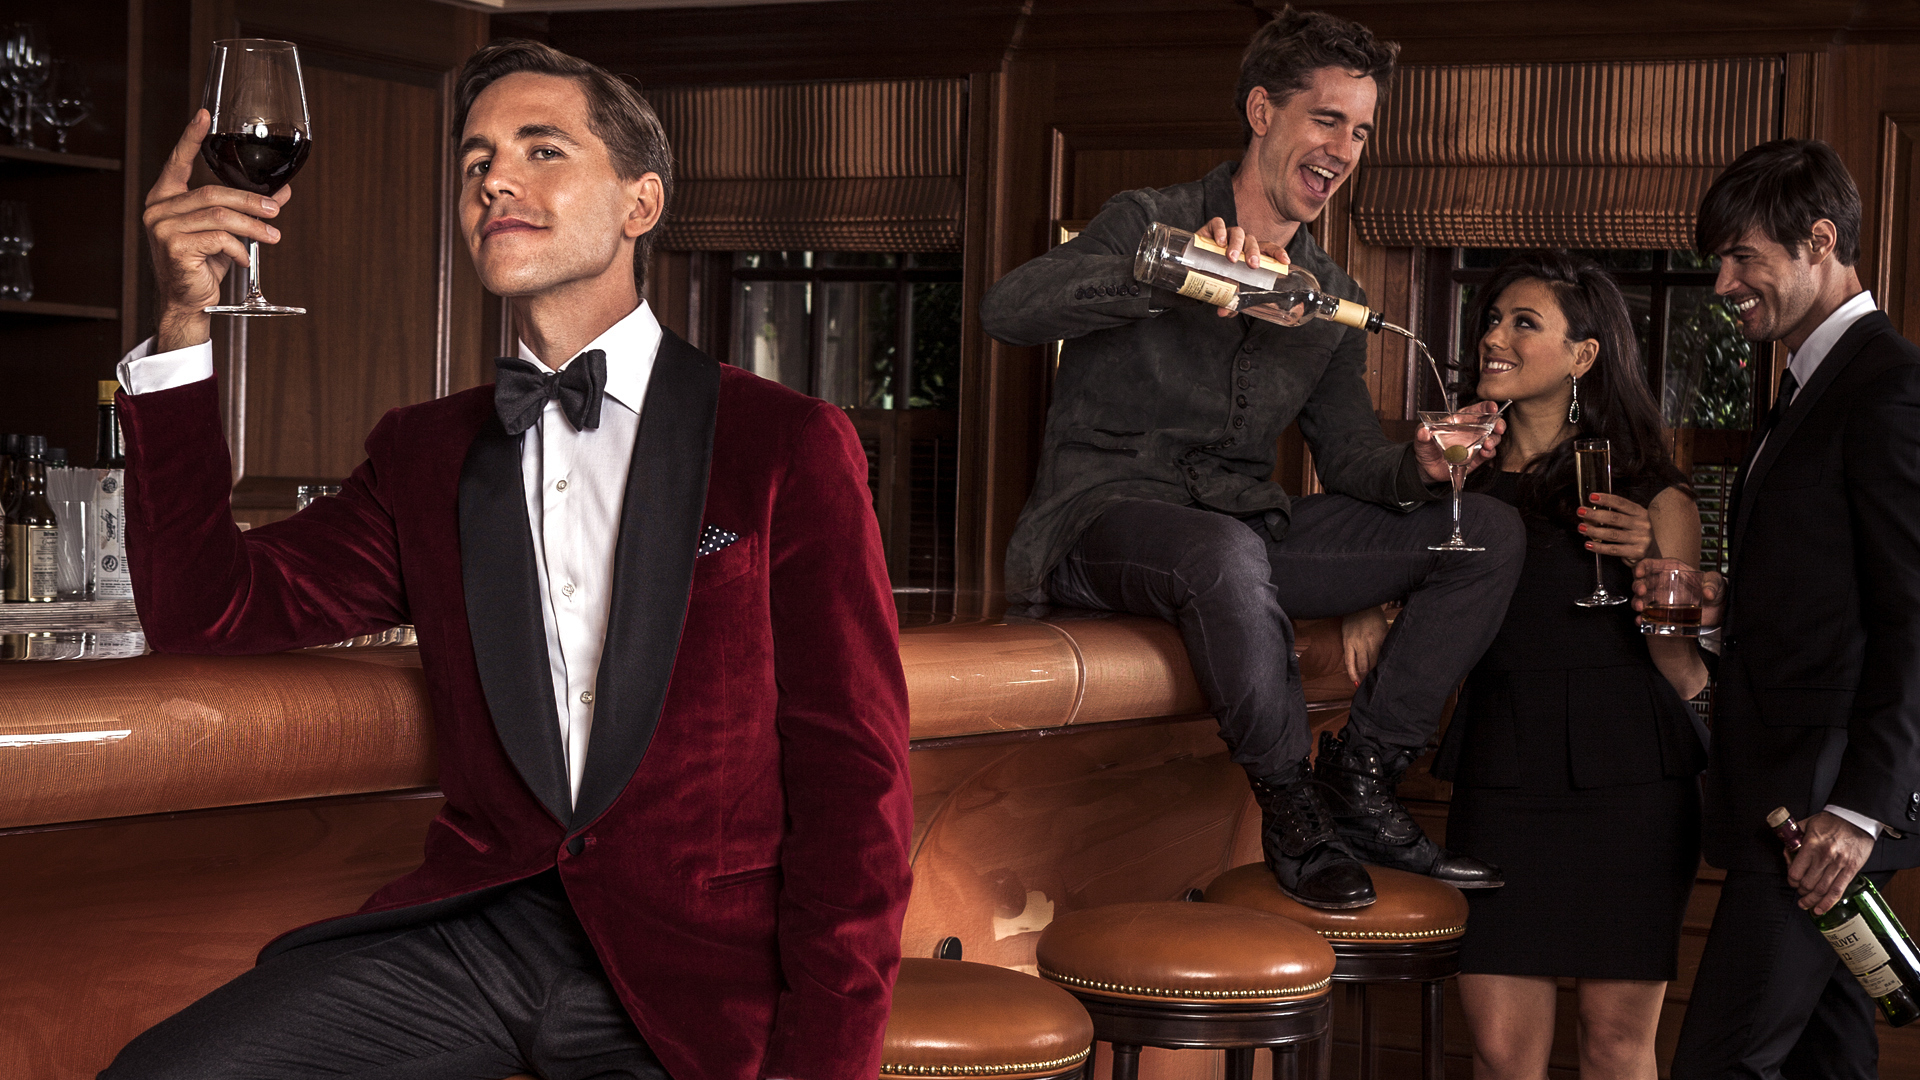 Brian Dietzen shows two sides of his fashion personality